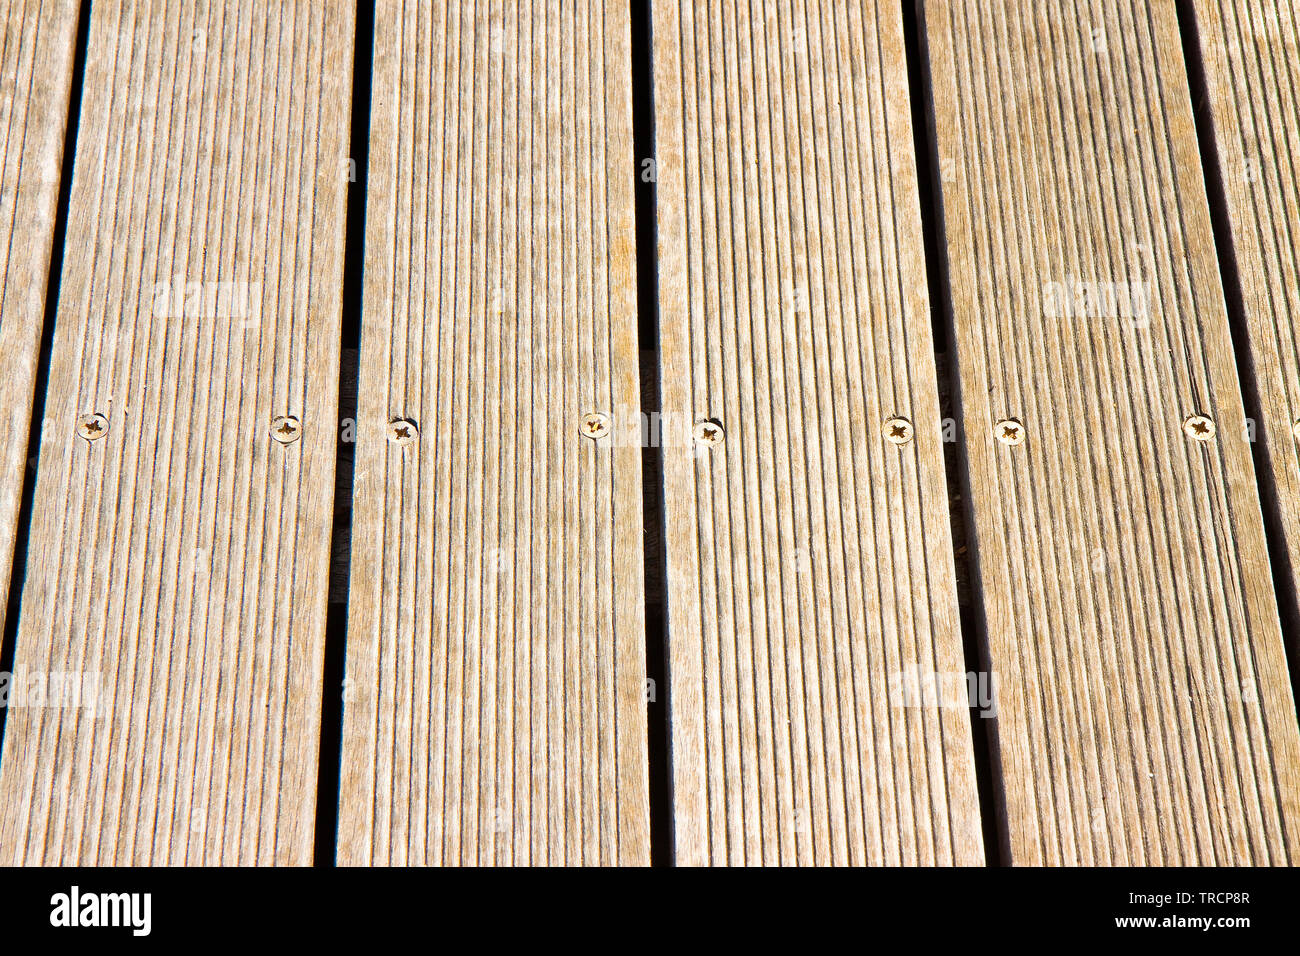 Floor wooden slats for outdoor use - Stock Image